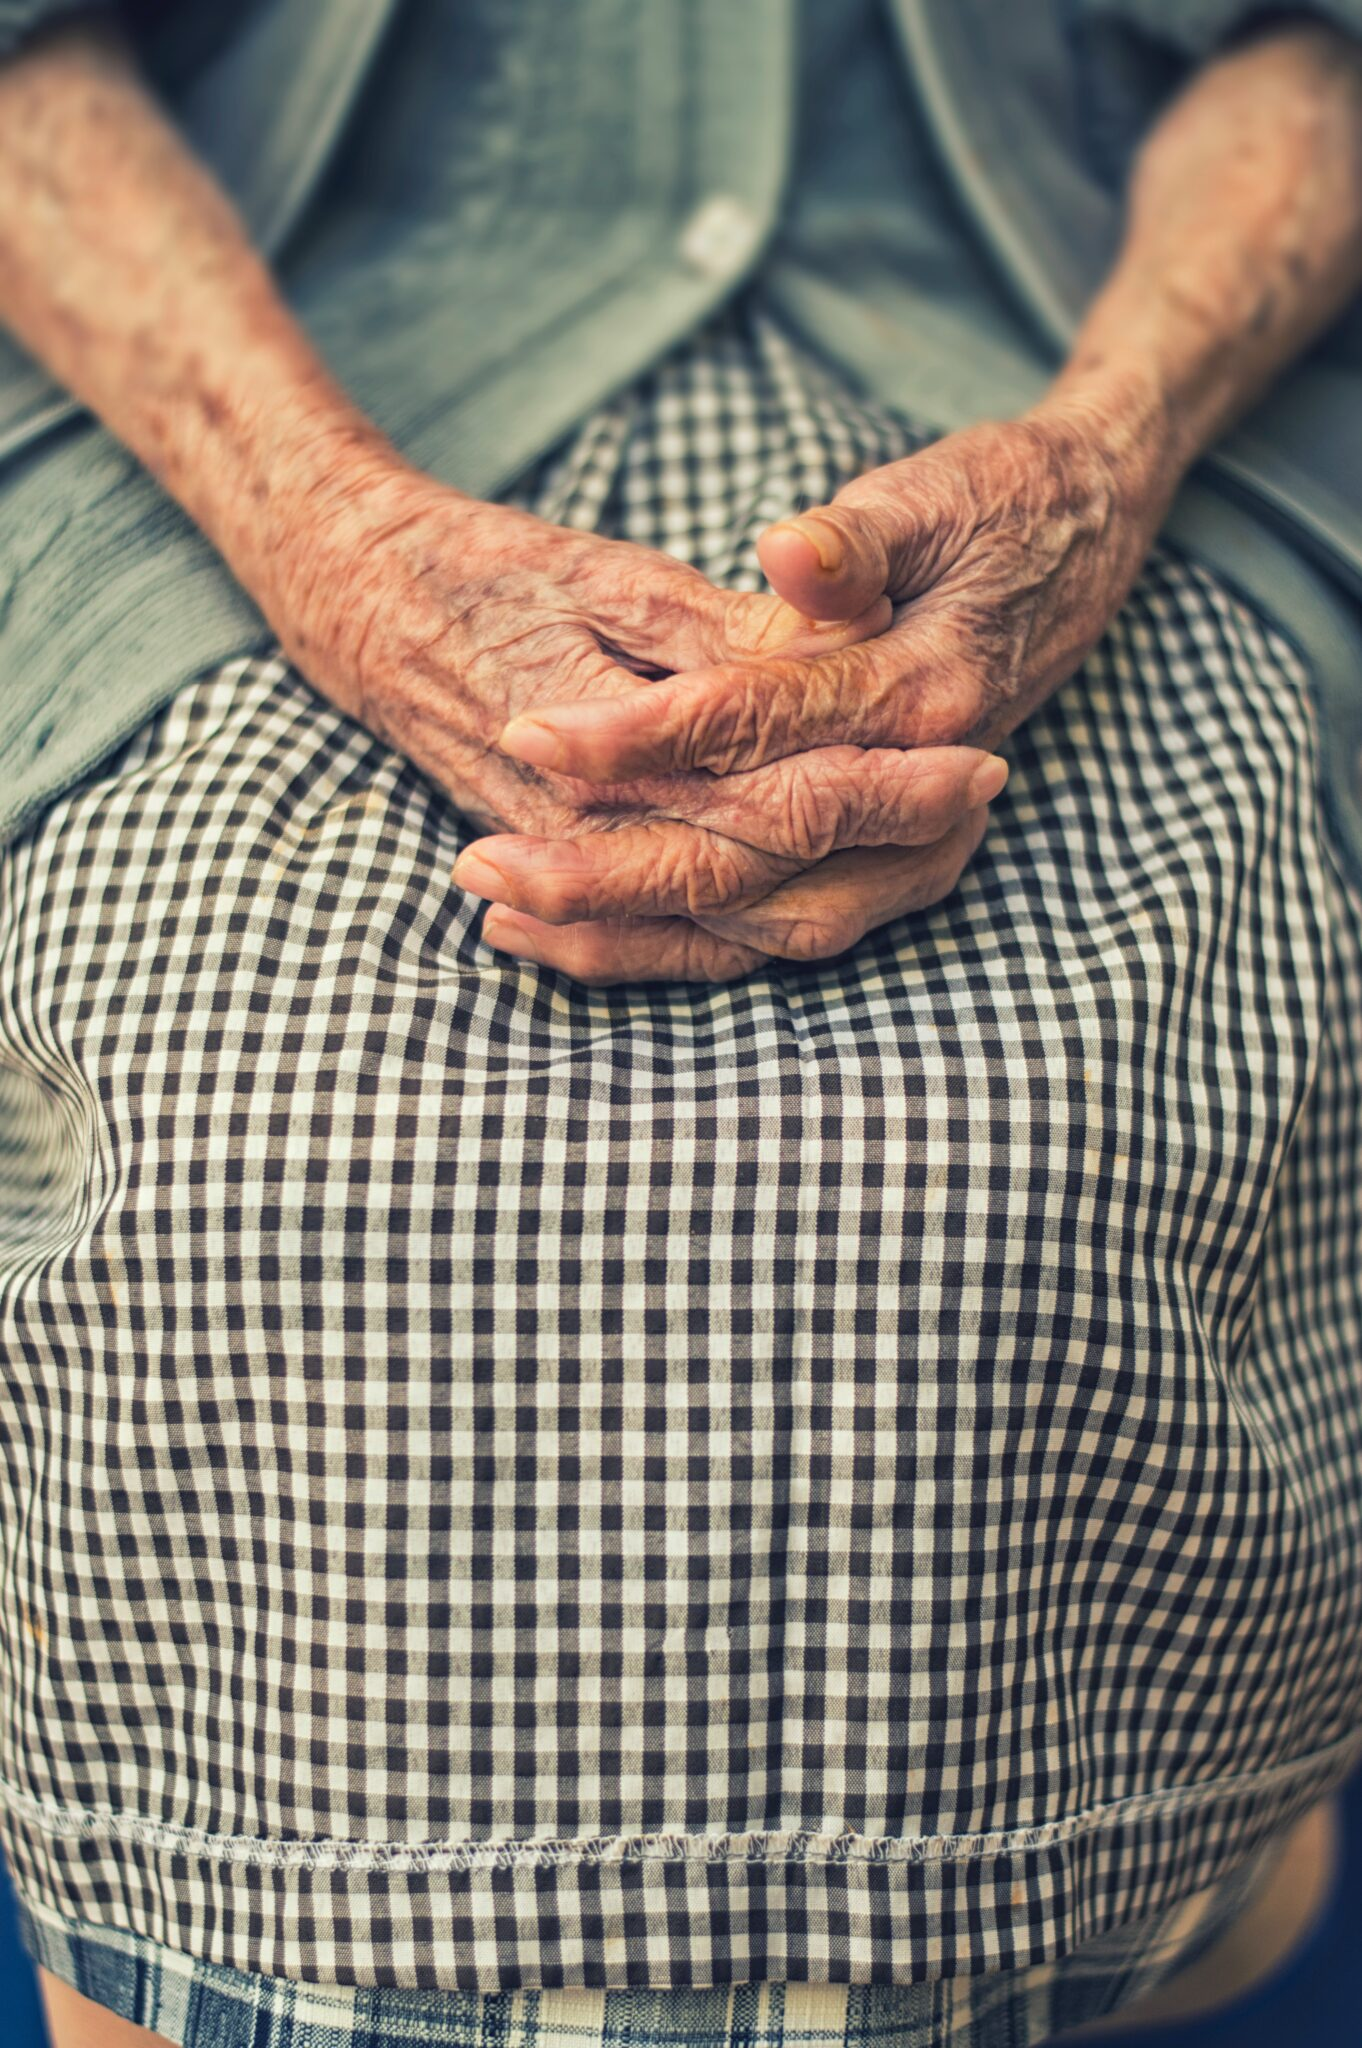 Elderly woman's hands folded together, for BGS blog Guardianship During COVID-19